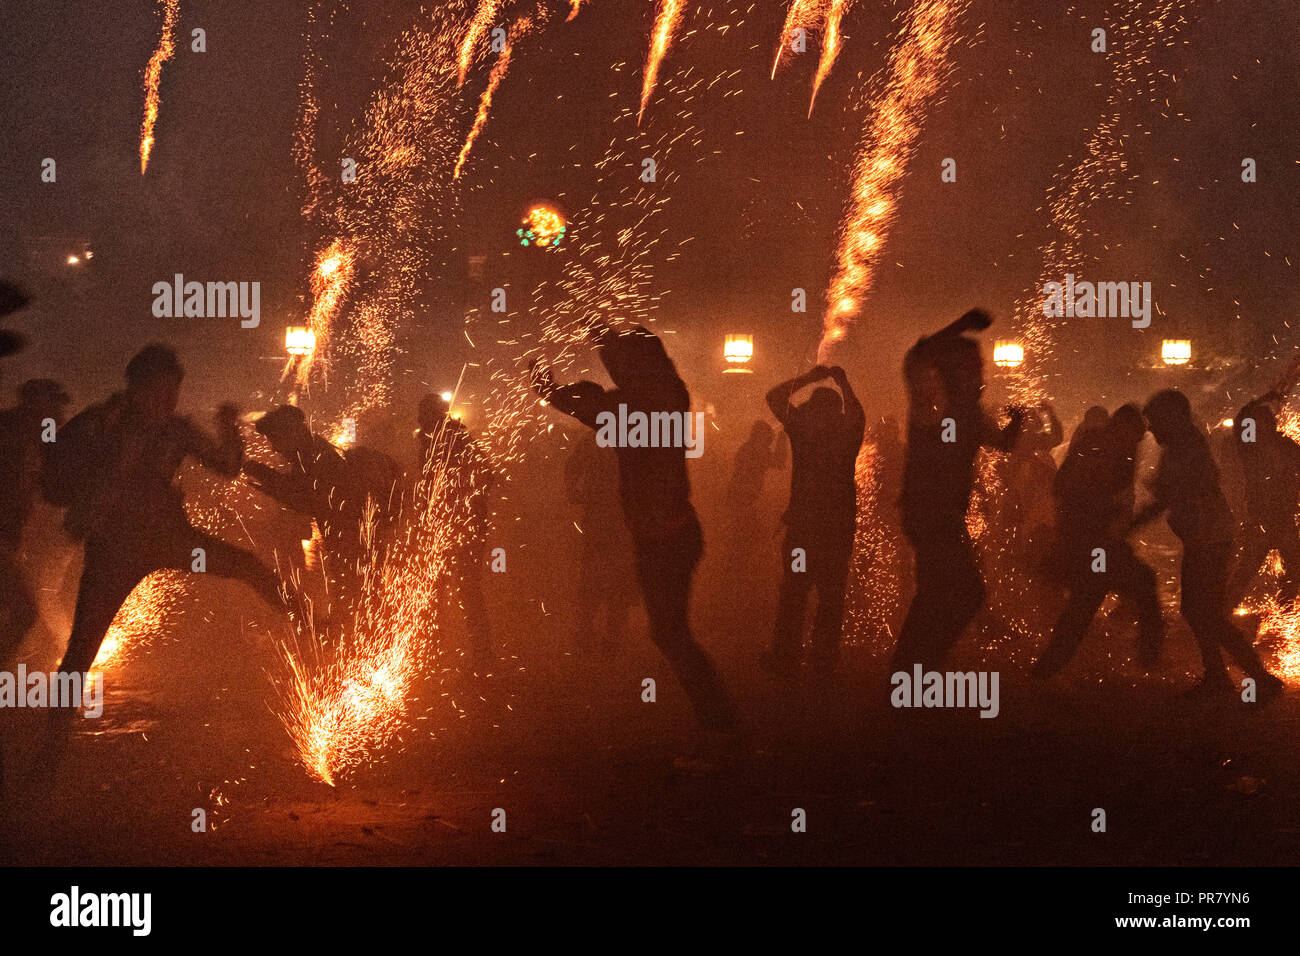 San Miguel de Allende, Mexico. 29th Sept 2018. Residents scramble as they are pelted by pyrotechnic sky rockets during the Alborada festival September 29, 2018 in San Miguel de Allende, Mexico. The unusual festival celebrates the cities patron saint with a two hour-long firework battle at 4am representing the struggle between Saint Michael and Lucifer. Credit: Planetpix/Alamy Live News - Stock Image